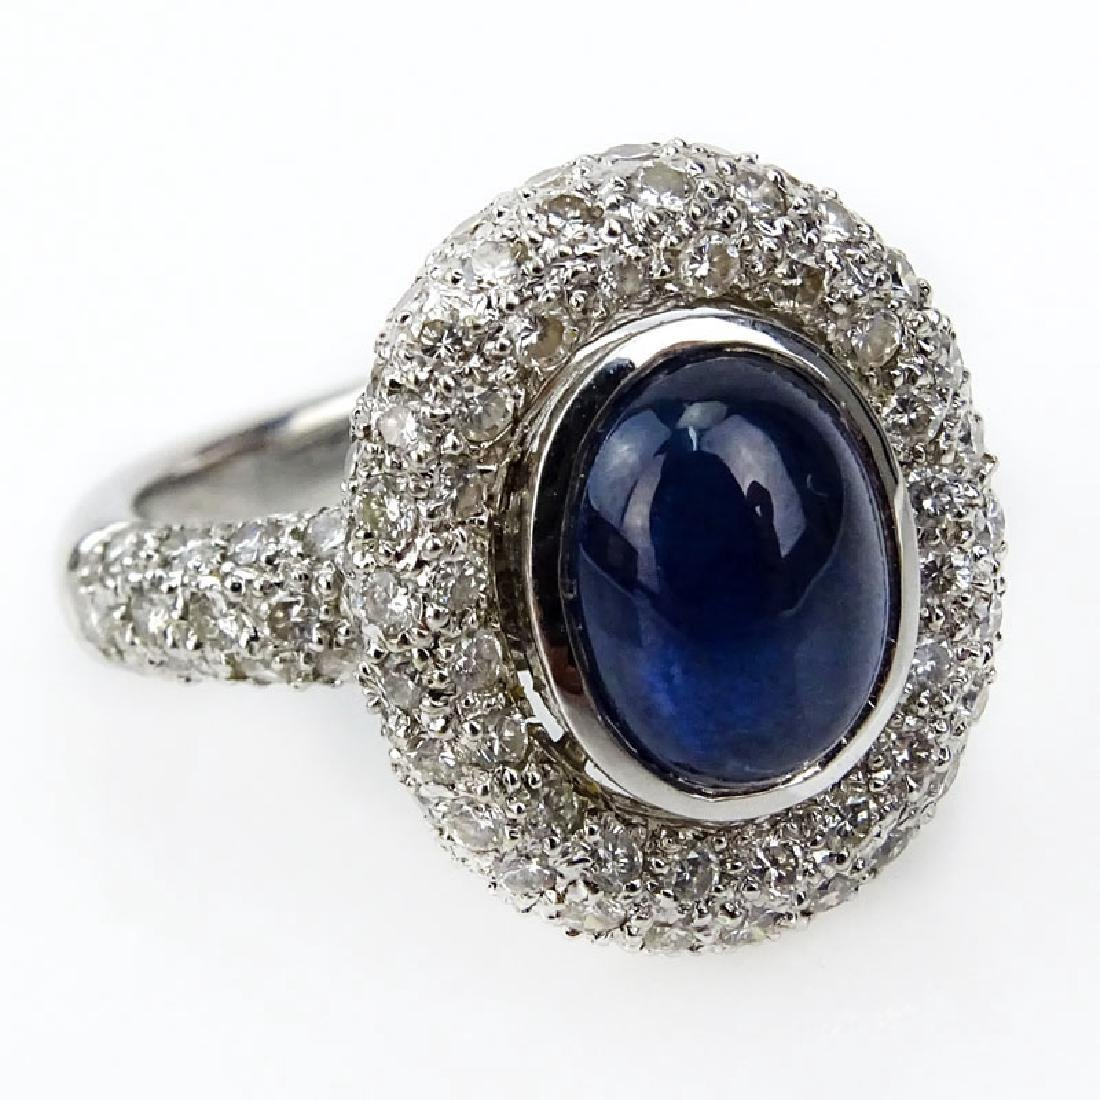 Italian Cabochon Sapphire, Pave Set Diamond and 18